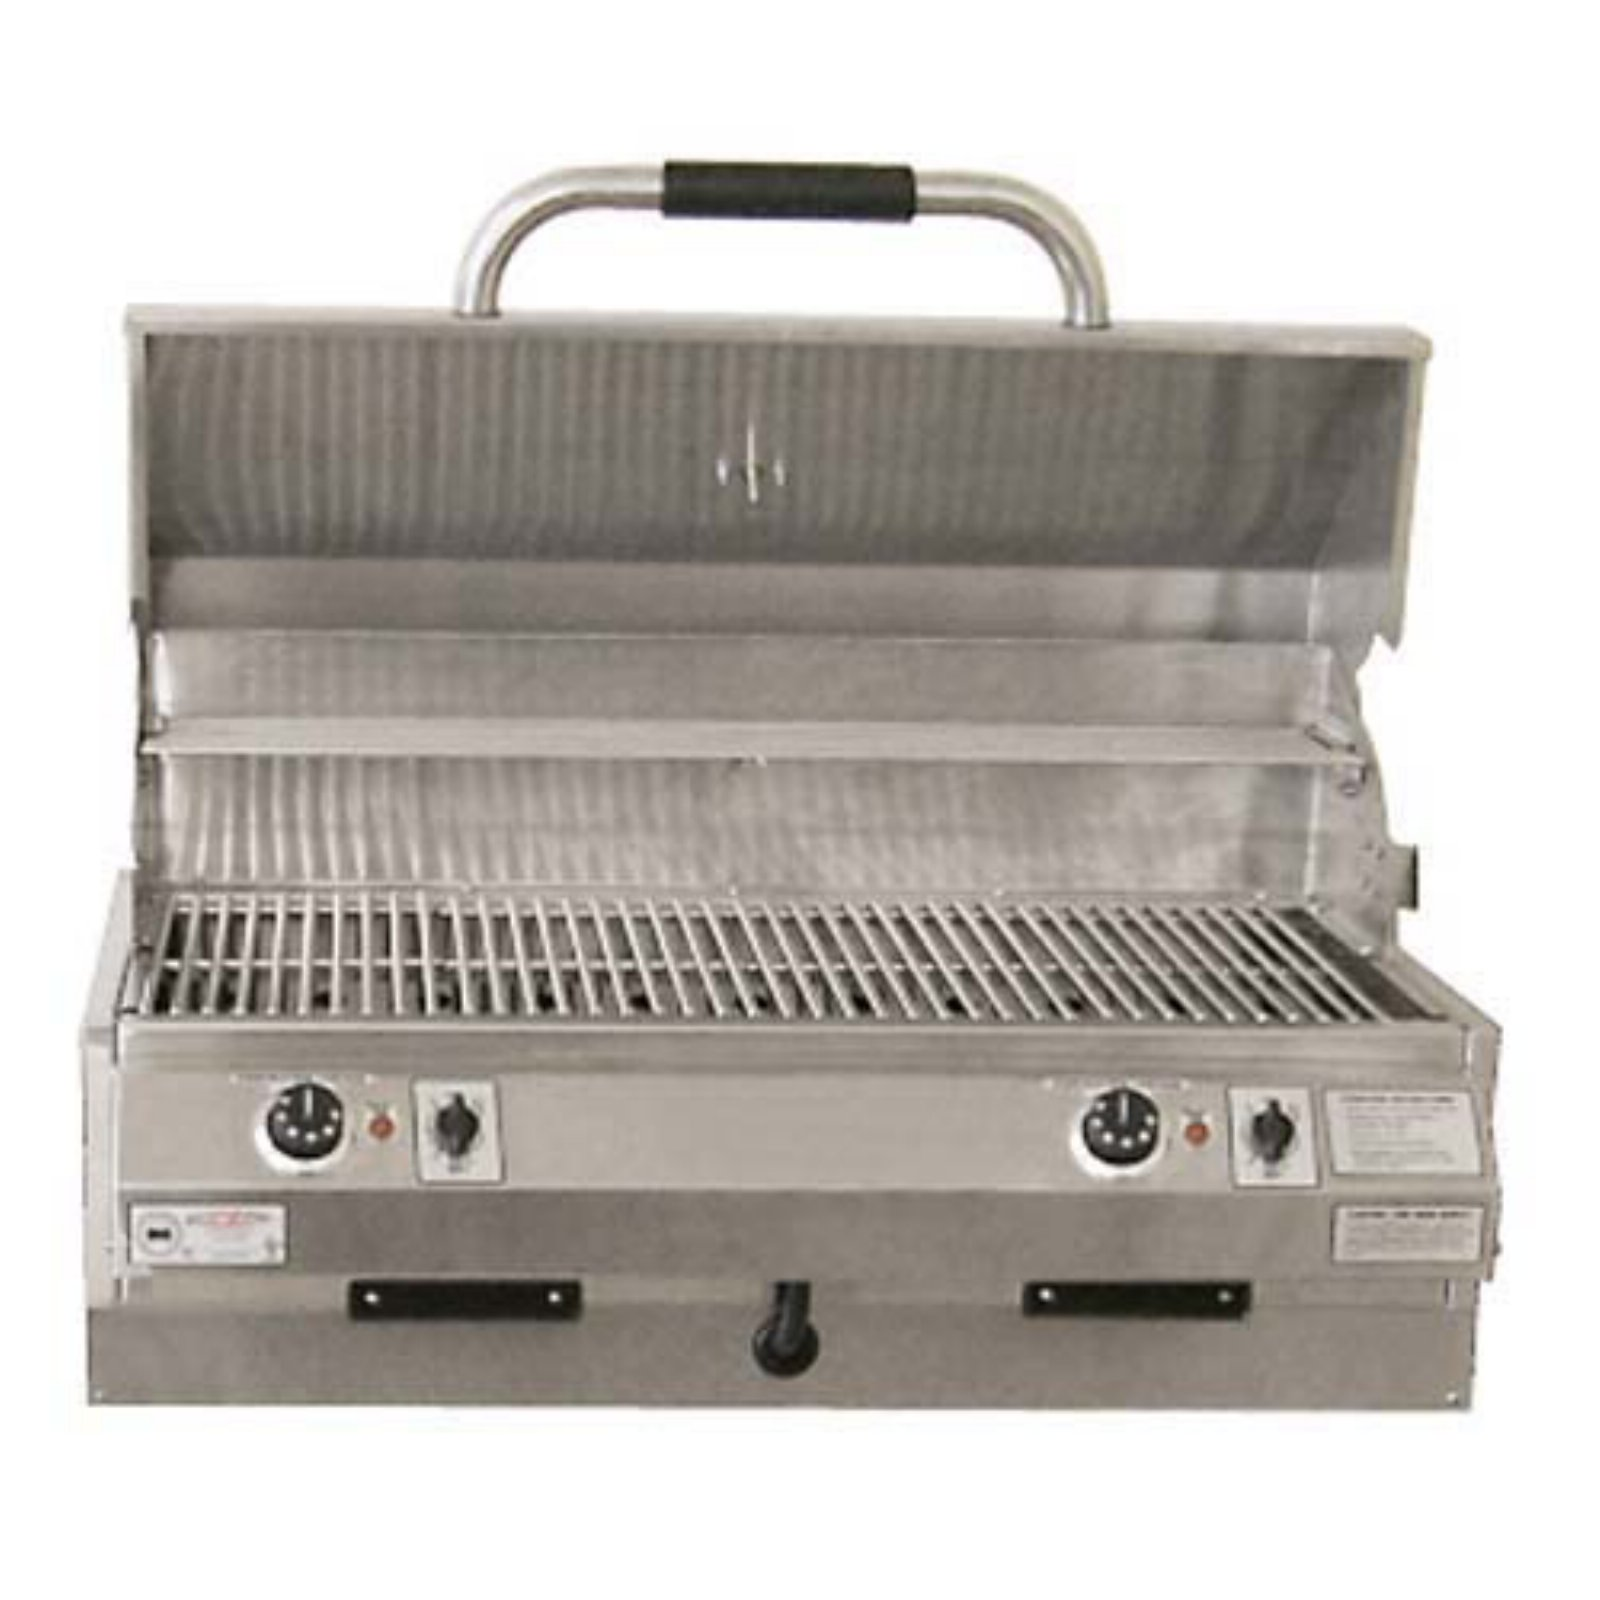 Electri-Chef Island 32 in. Build-In Electric Grill - Dual Burner